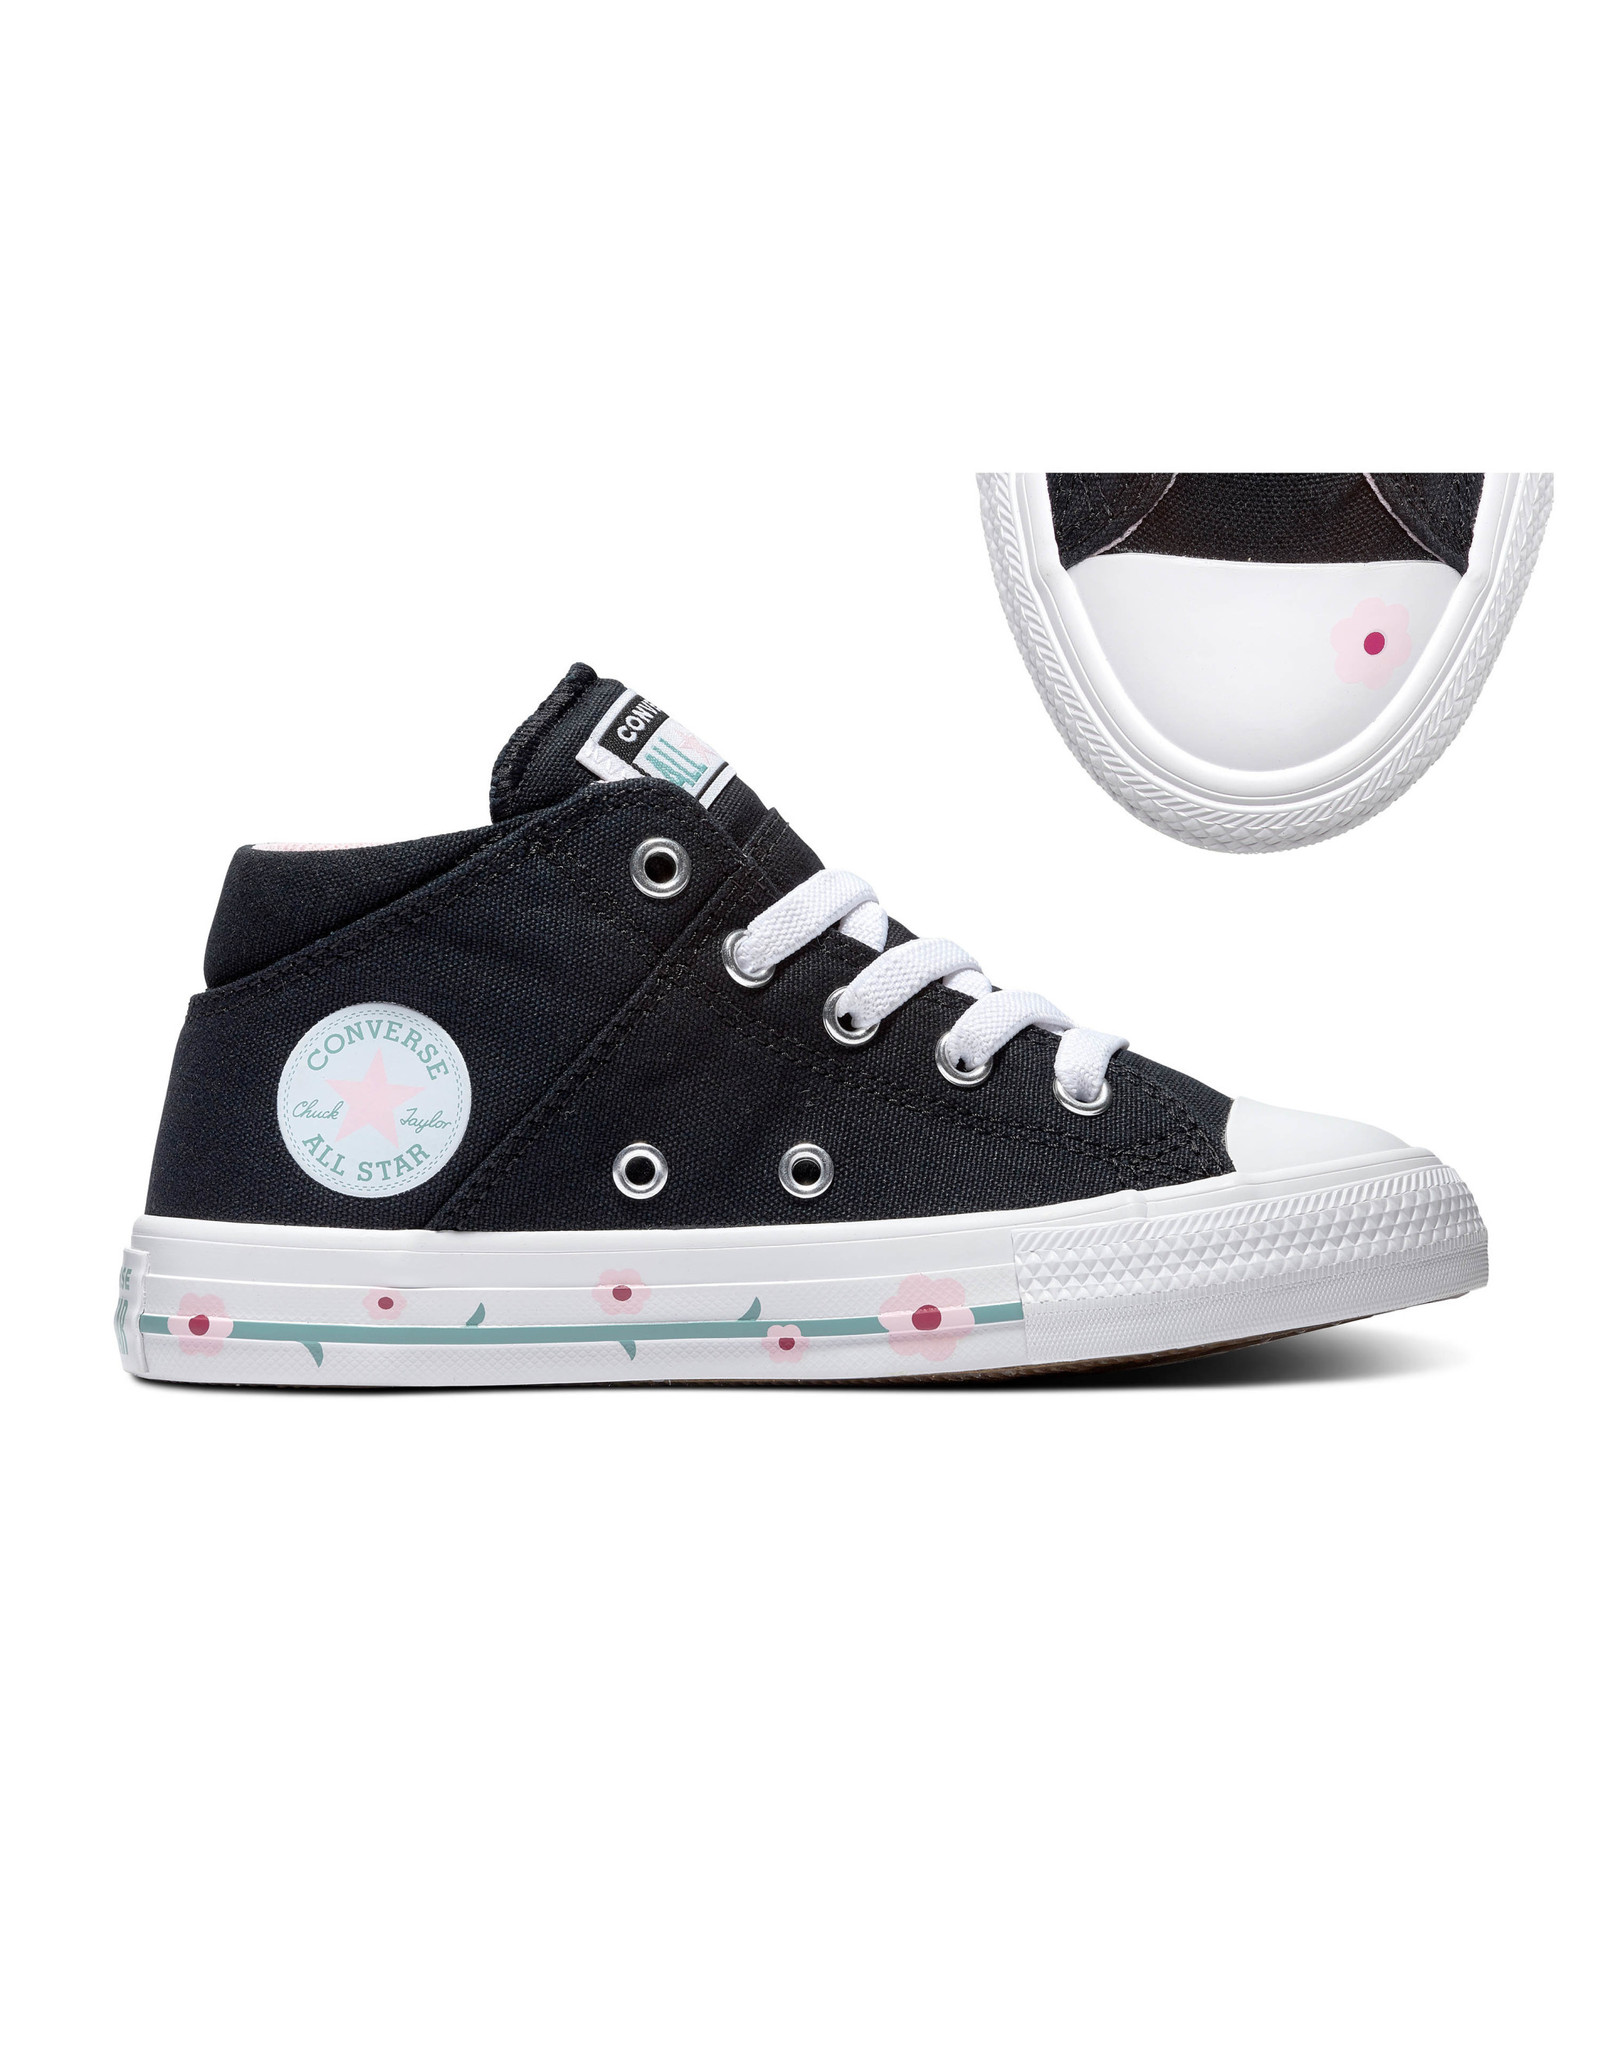 CONVERSE CHUCK TAYLOR ALL STAR  MADISON MID BLACK/CHERRY BLOSSOM CAMAB-666917C